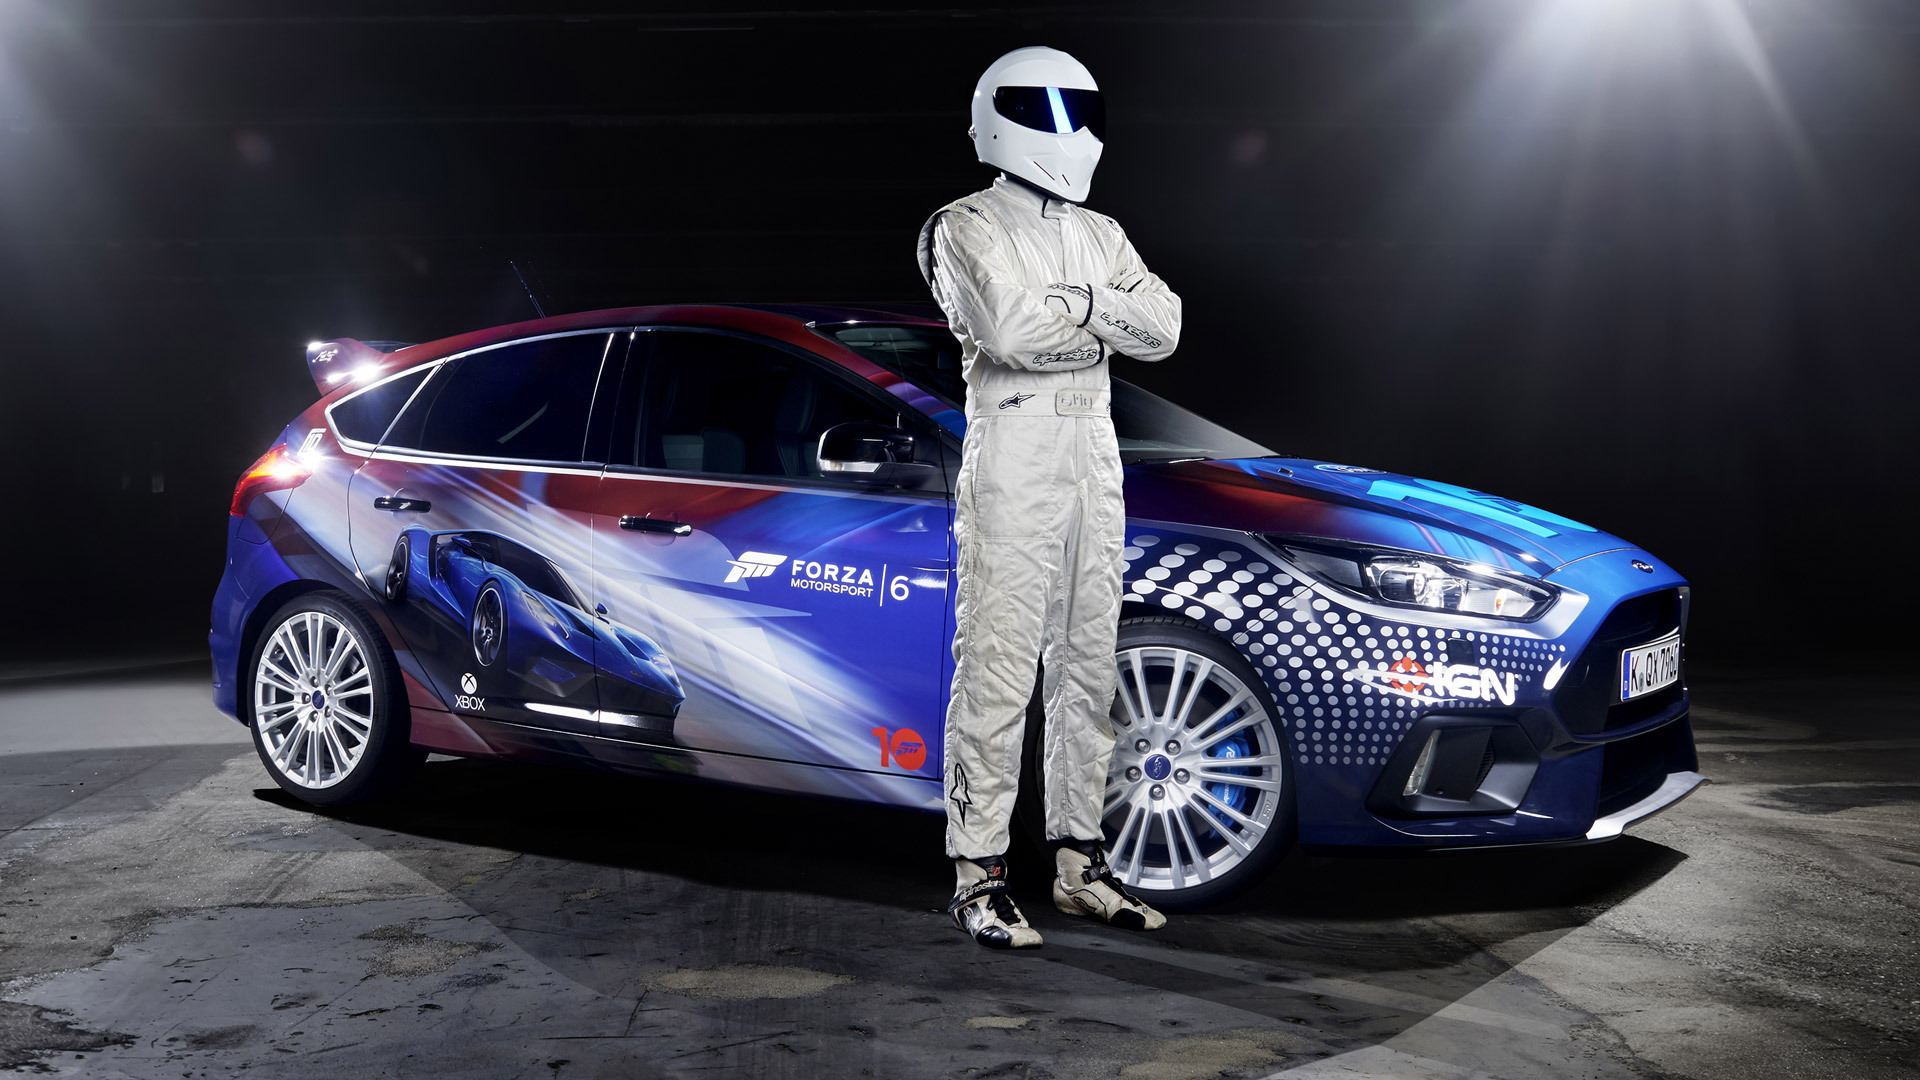 One-off Ford Focus RS with livery designed by Forza Motorsport gamers